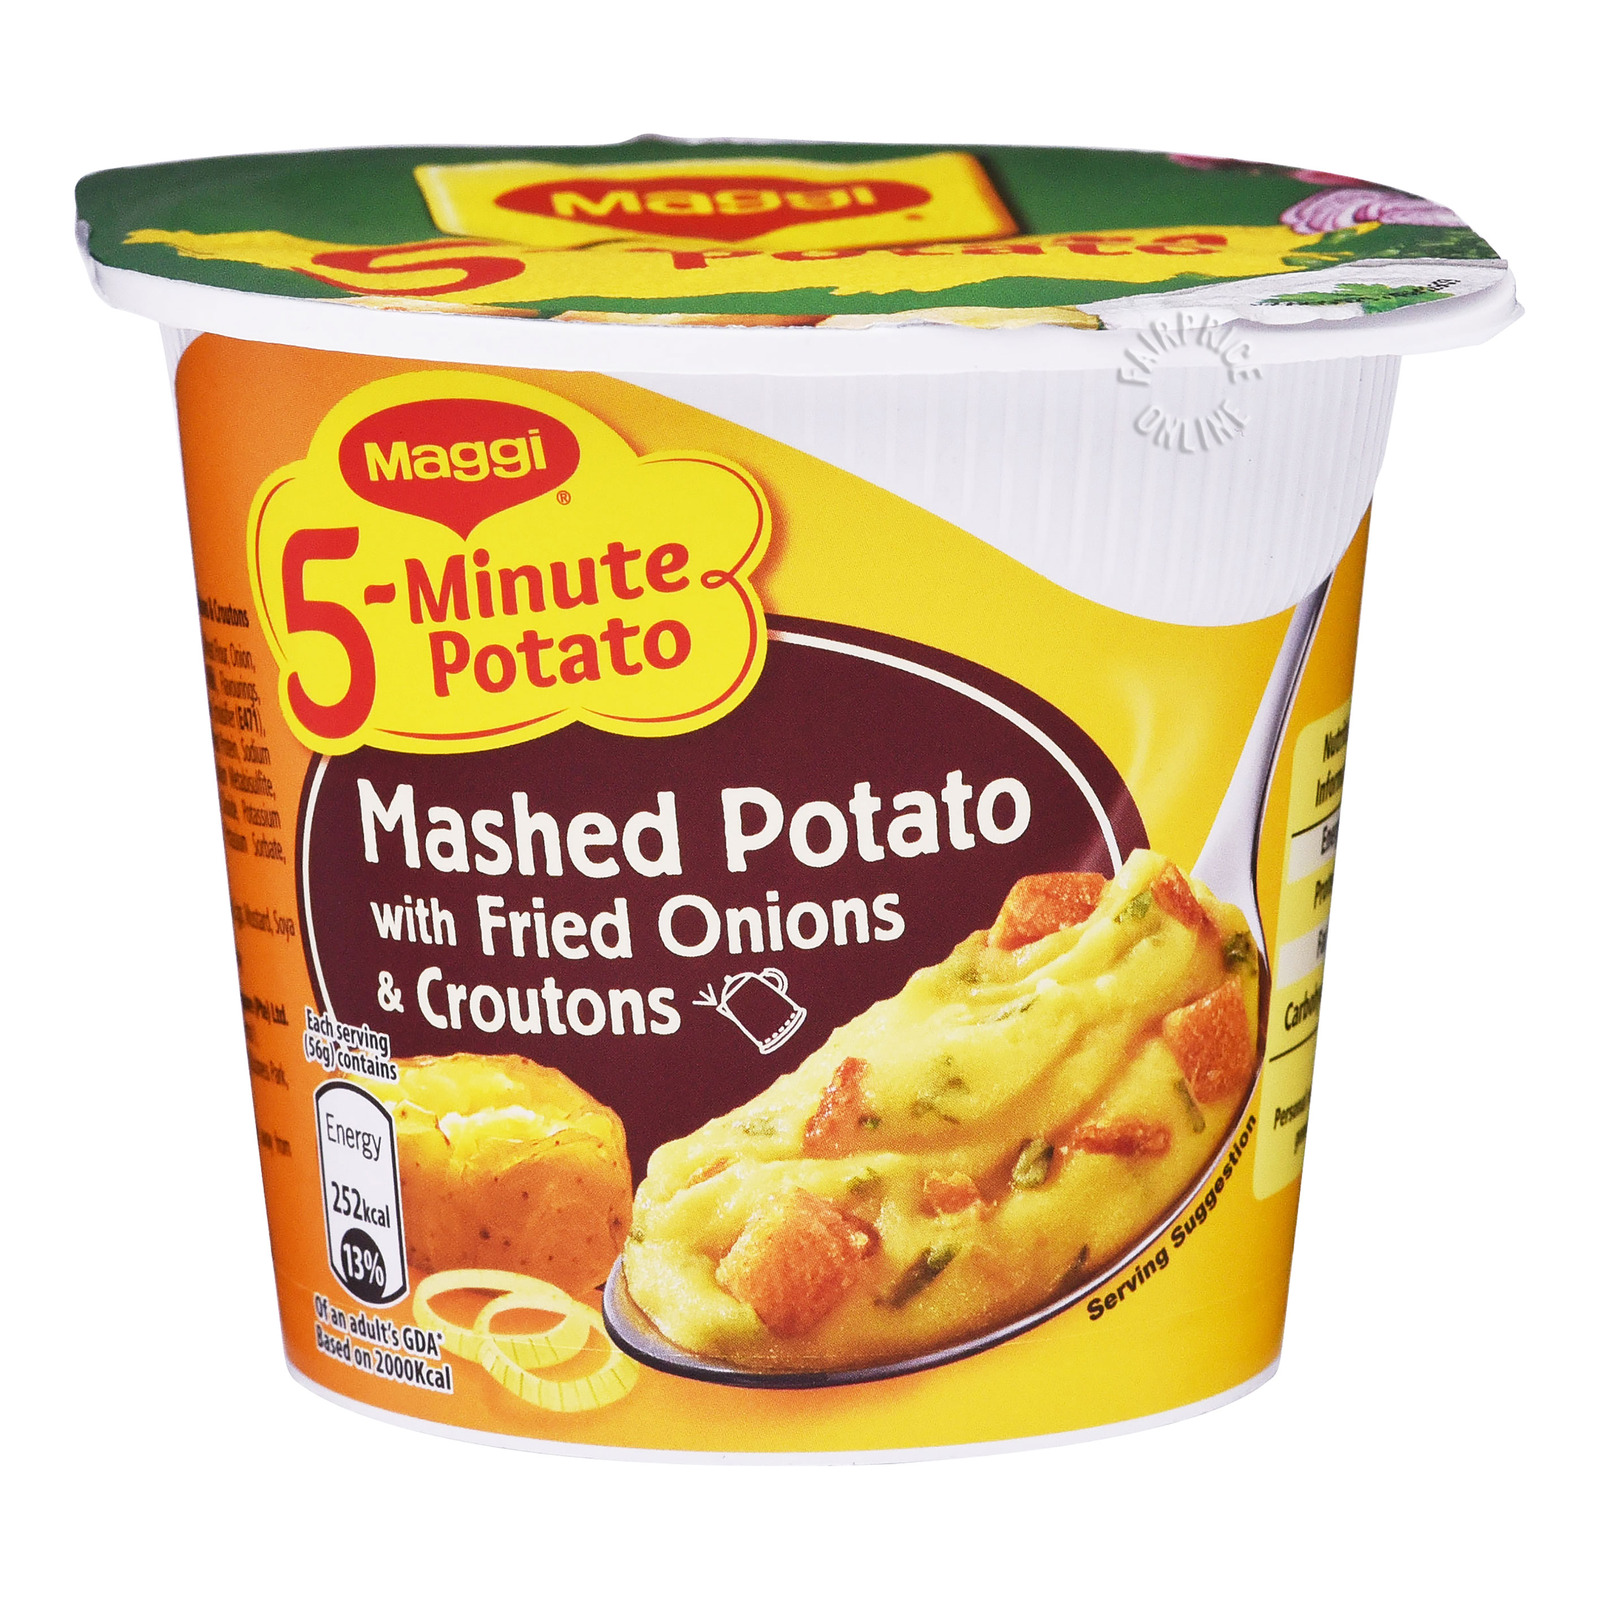 Maggi 5-Minute Instant Mashed Potato - Fried Onions & Croutons